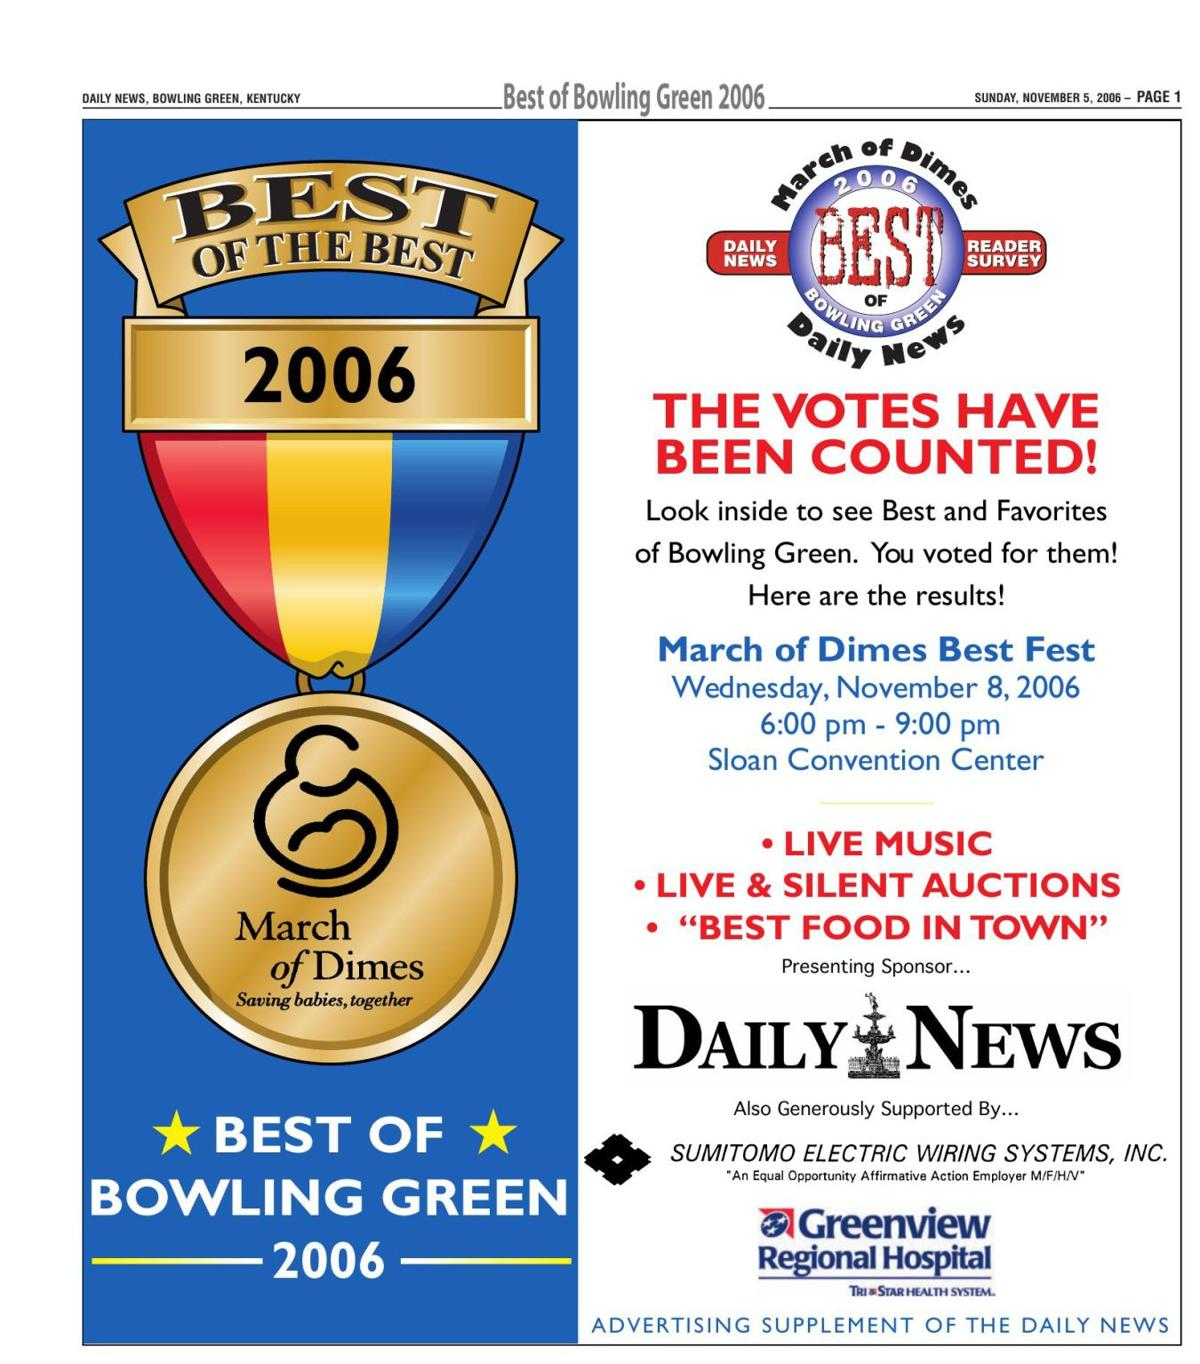 Best of Bowling Green 2006 | Best of Bowling Green